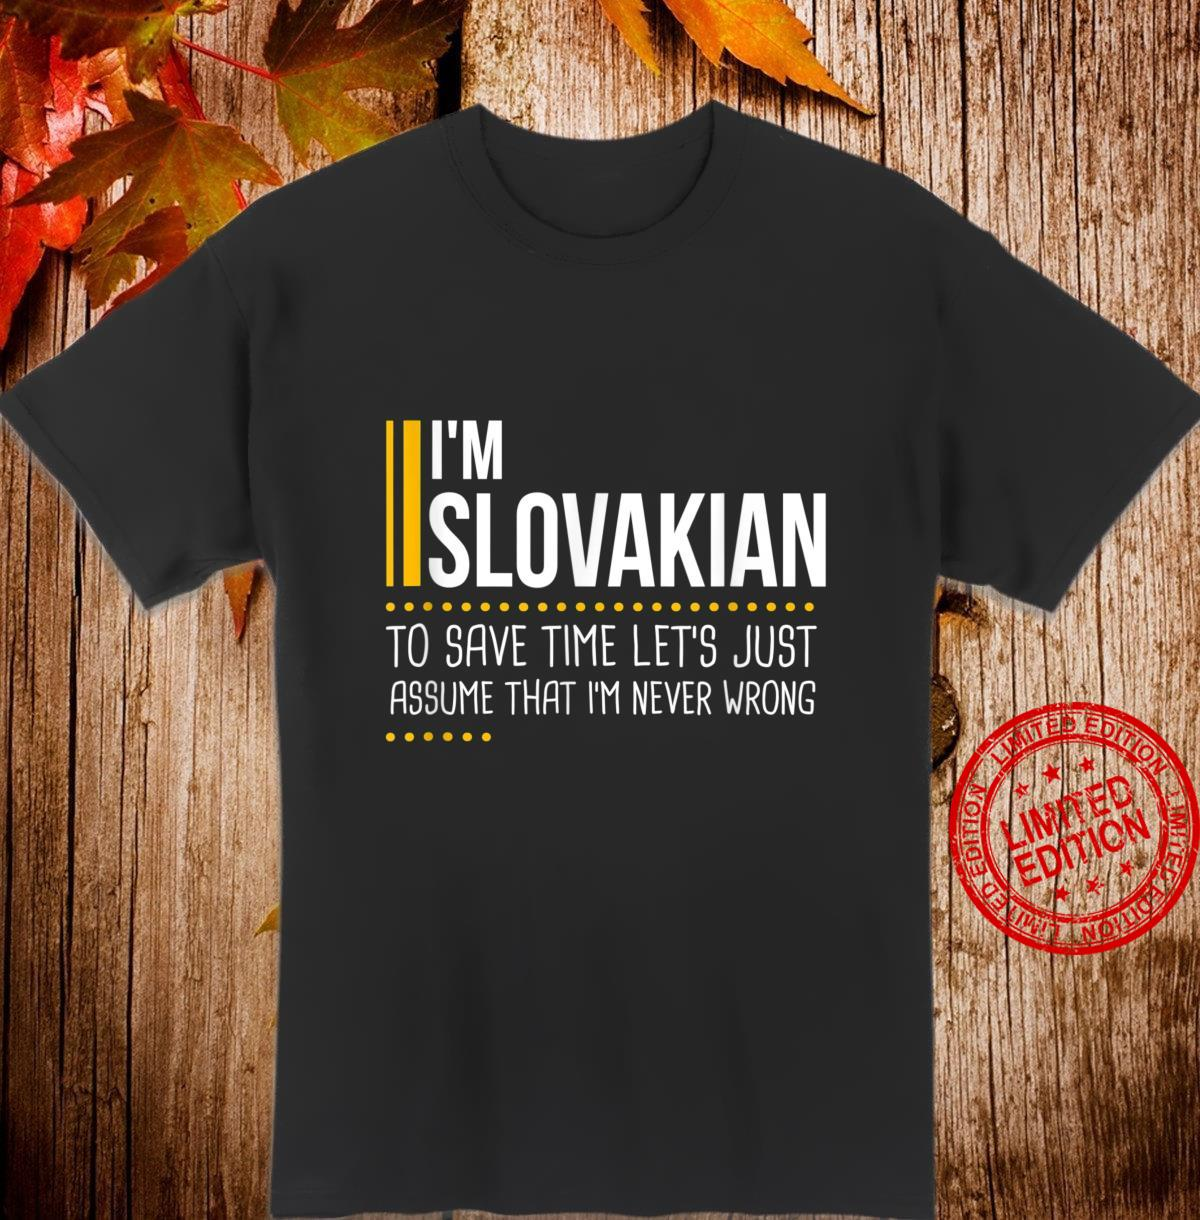 Save Time Lets Assume Slovakian Never Wrong Slovakia Shirt